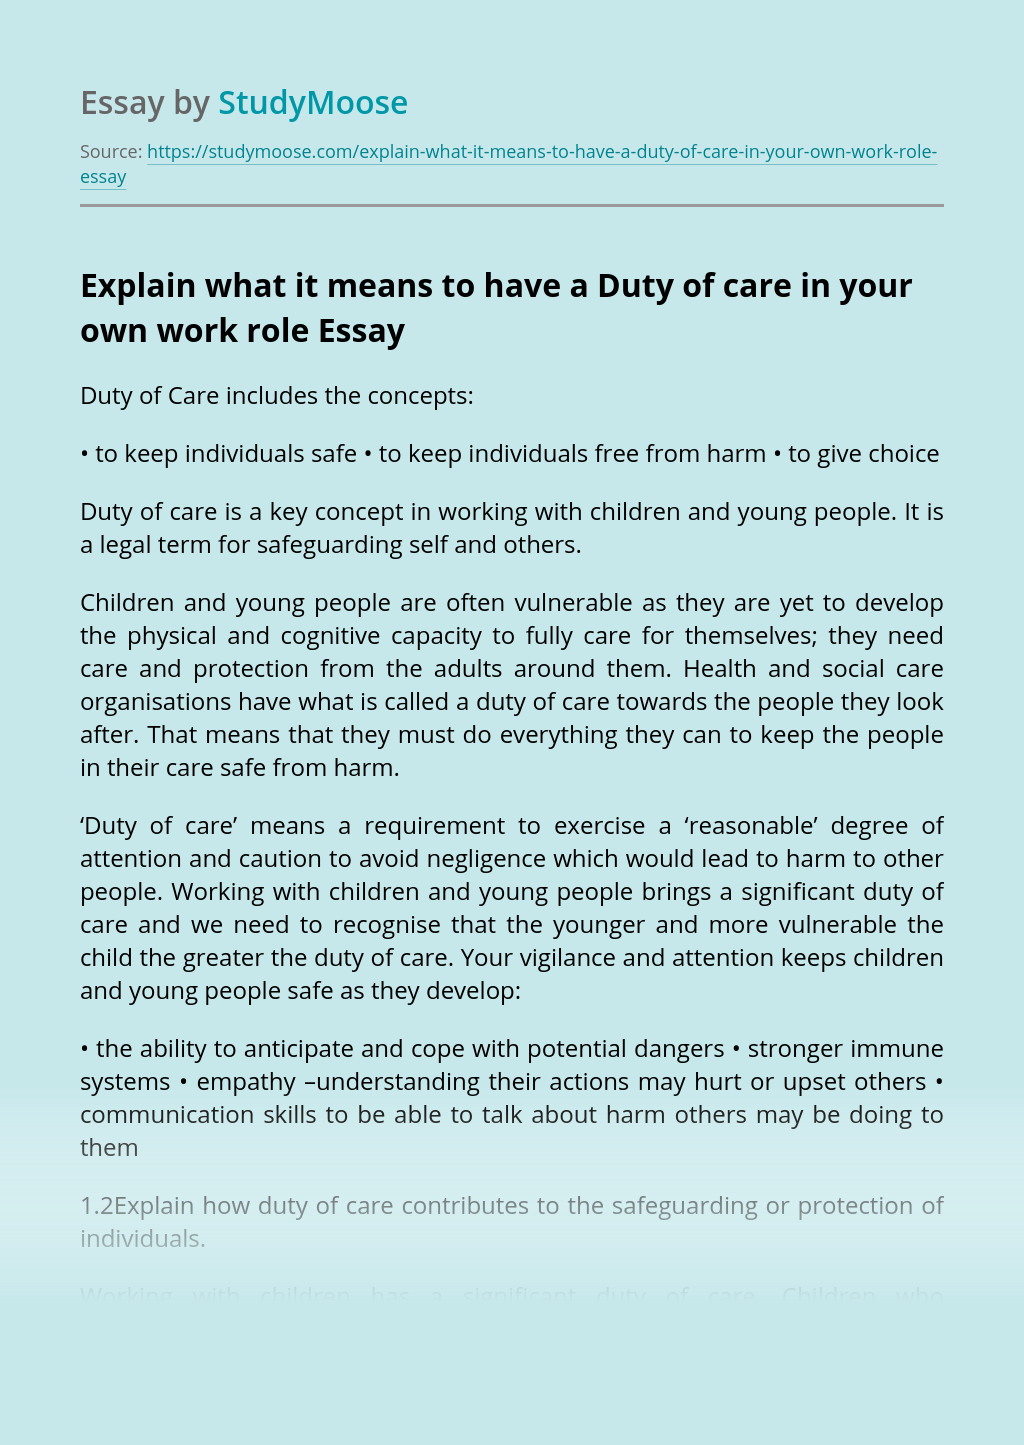 Explain what it means to have a Duty of care in your own work role